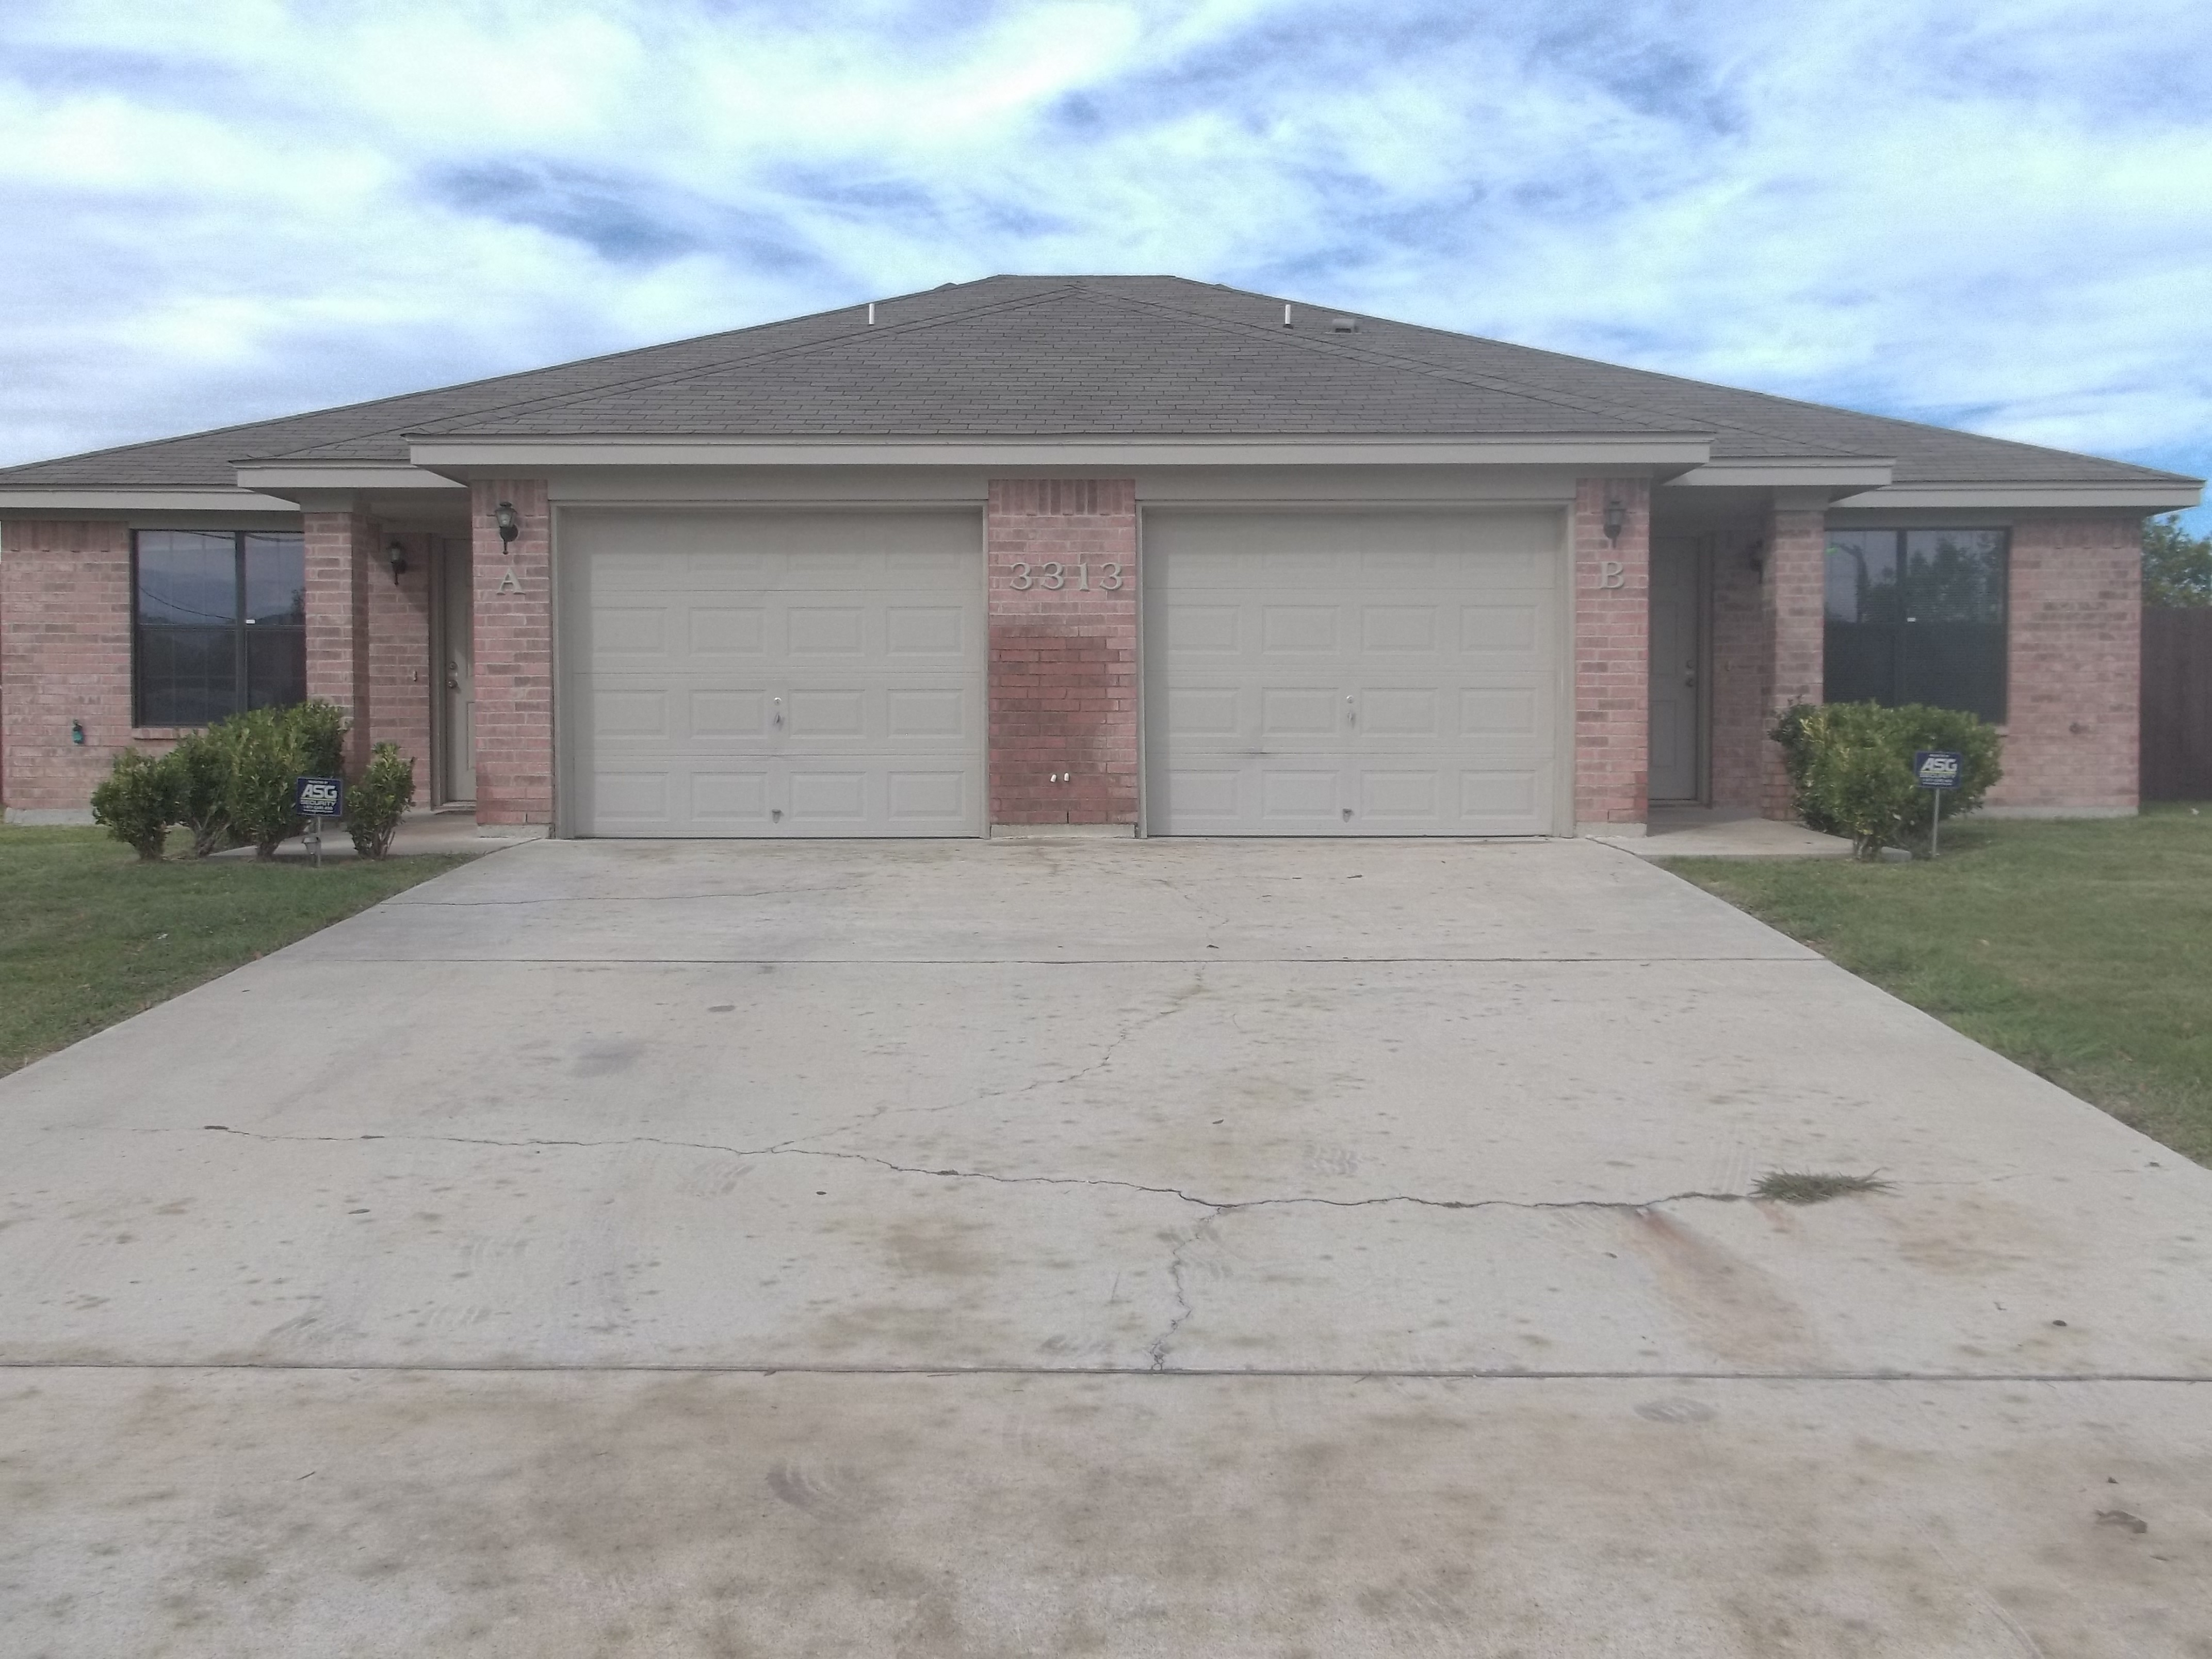 3313 florence rd apartments for rent in killeen tx 76542